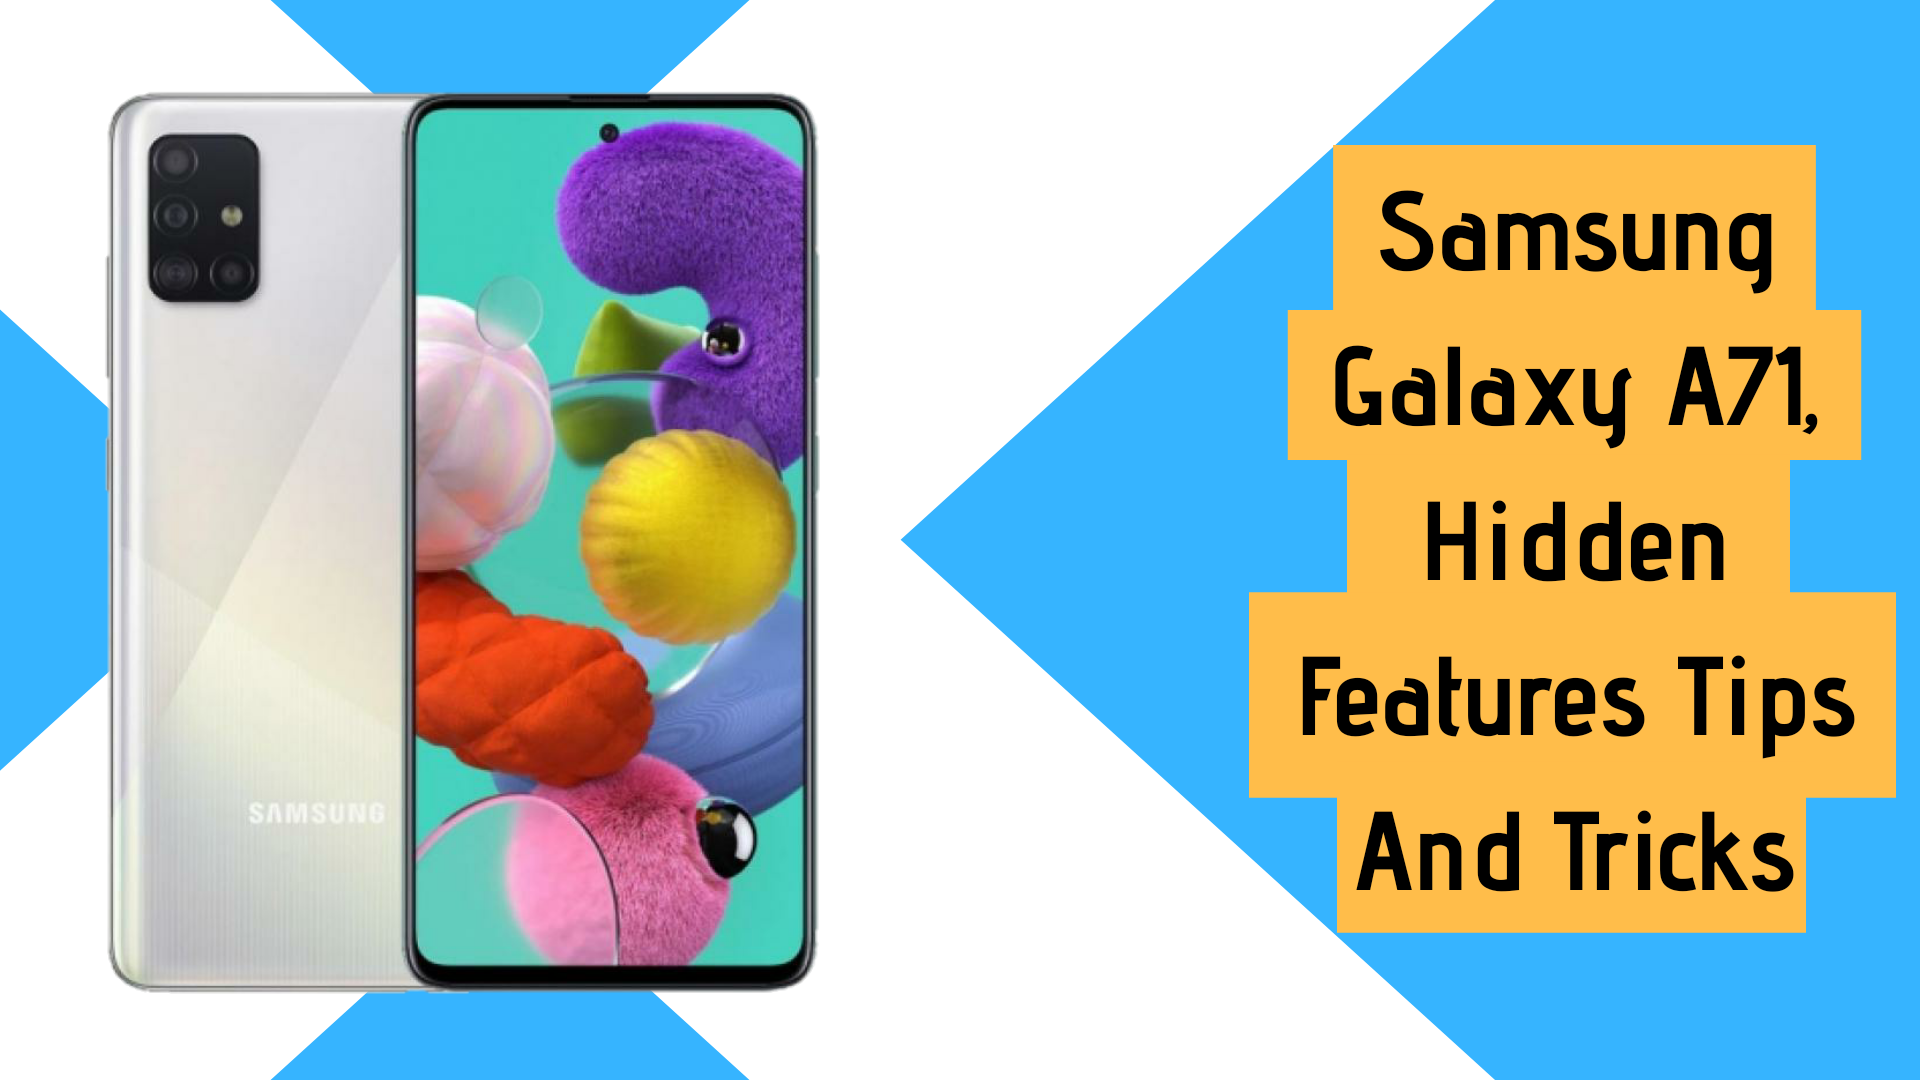 15 Best Samsung Galaxy A71 Hidden Features Tips And Tricks Gizdoc